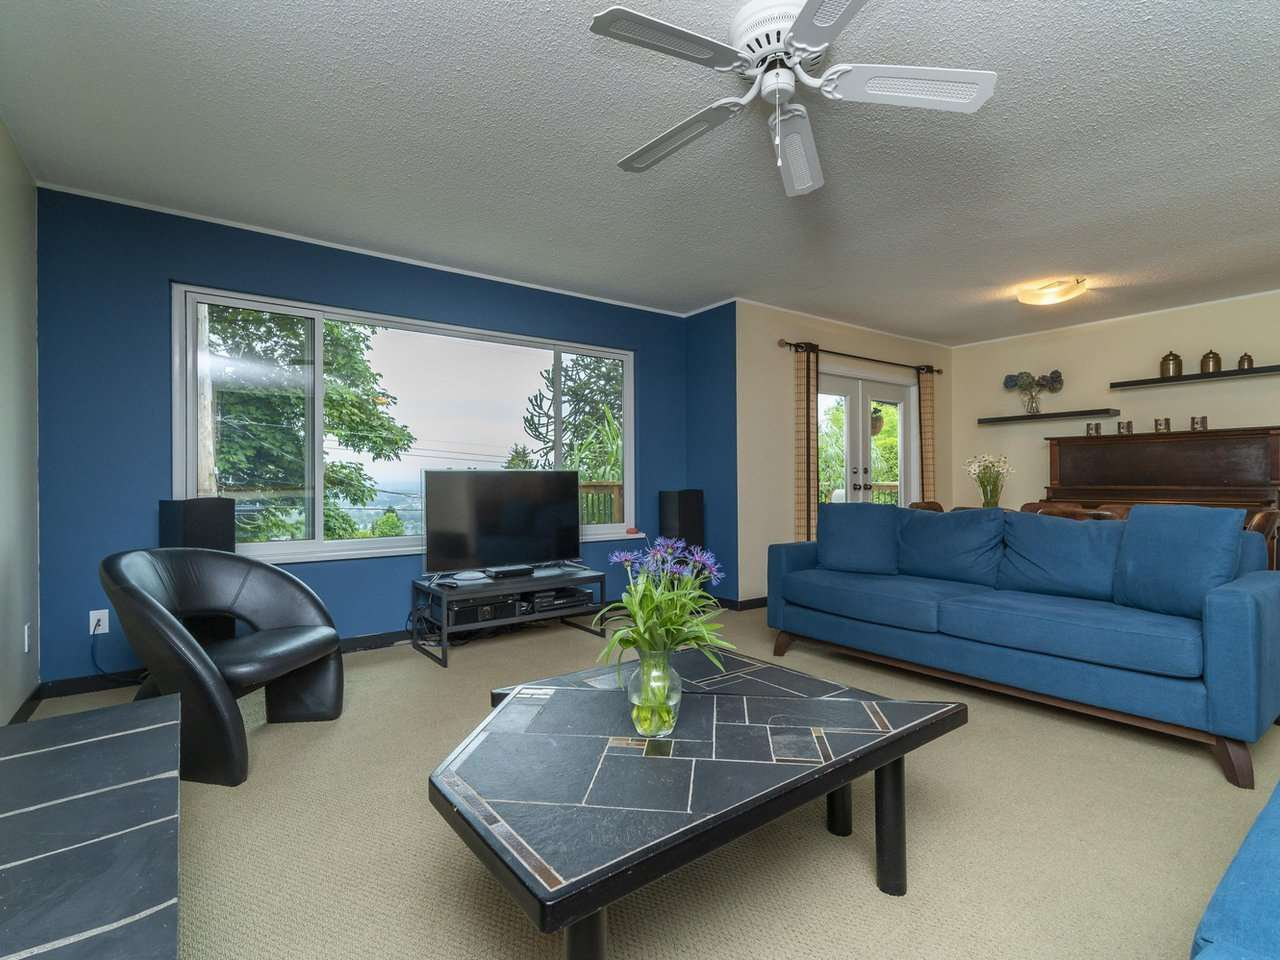 Photo 18: Photos: 2773 DAYBREAK Avenue in Coquitlam: Ranch Park House for sale : MLS®# R2457912